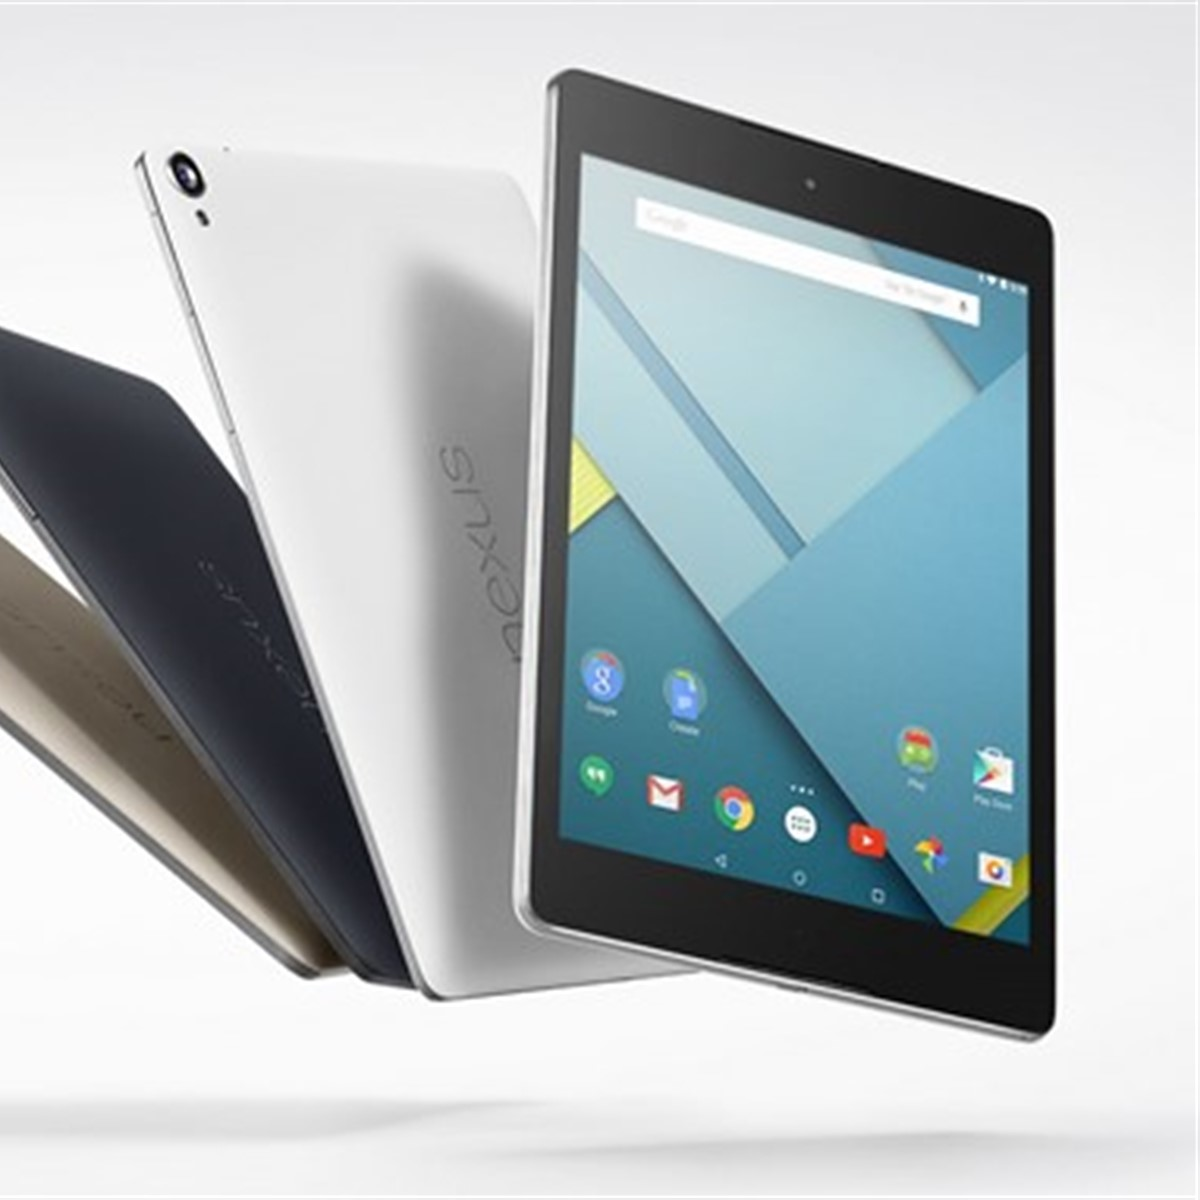 Google announces Nexus 9 8 9-inch tablet: Digital Photography Review